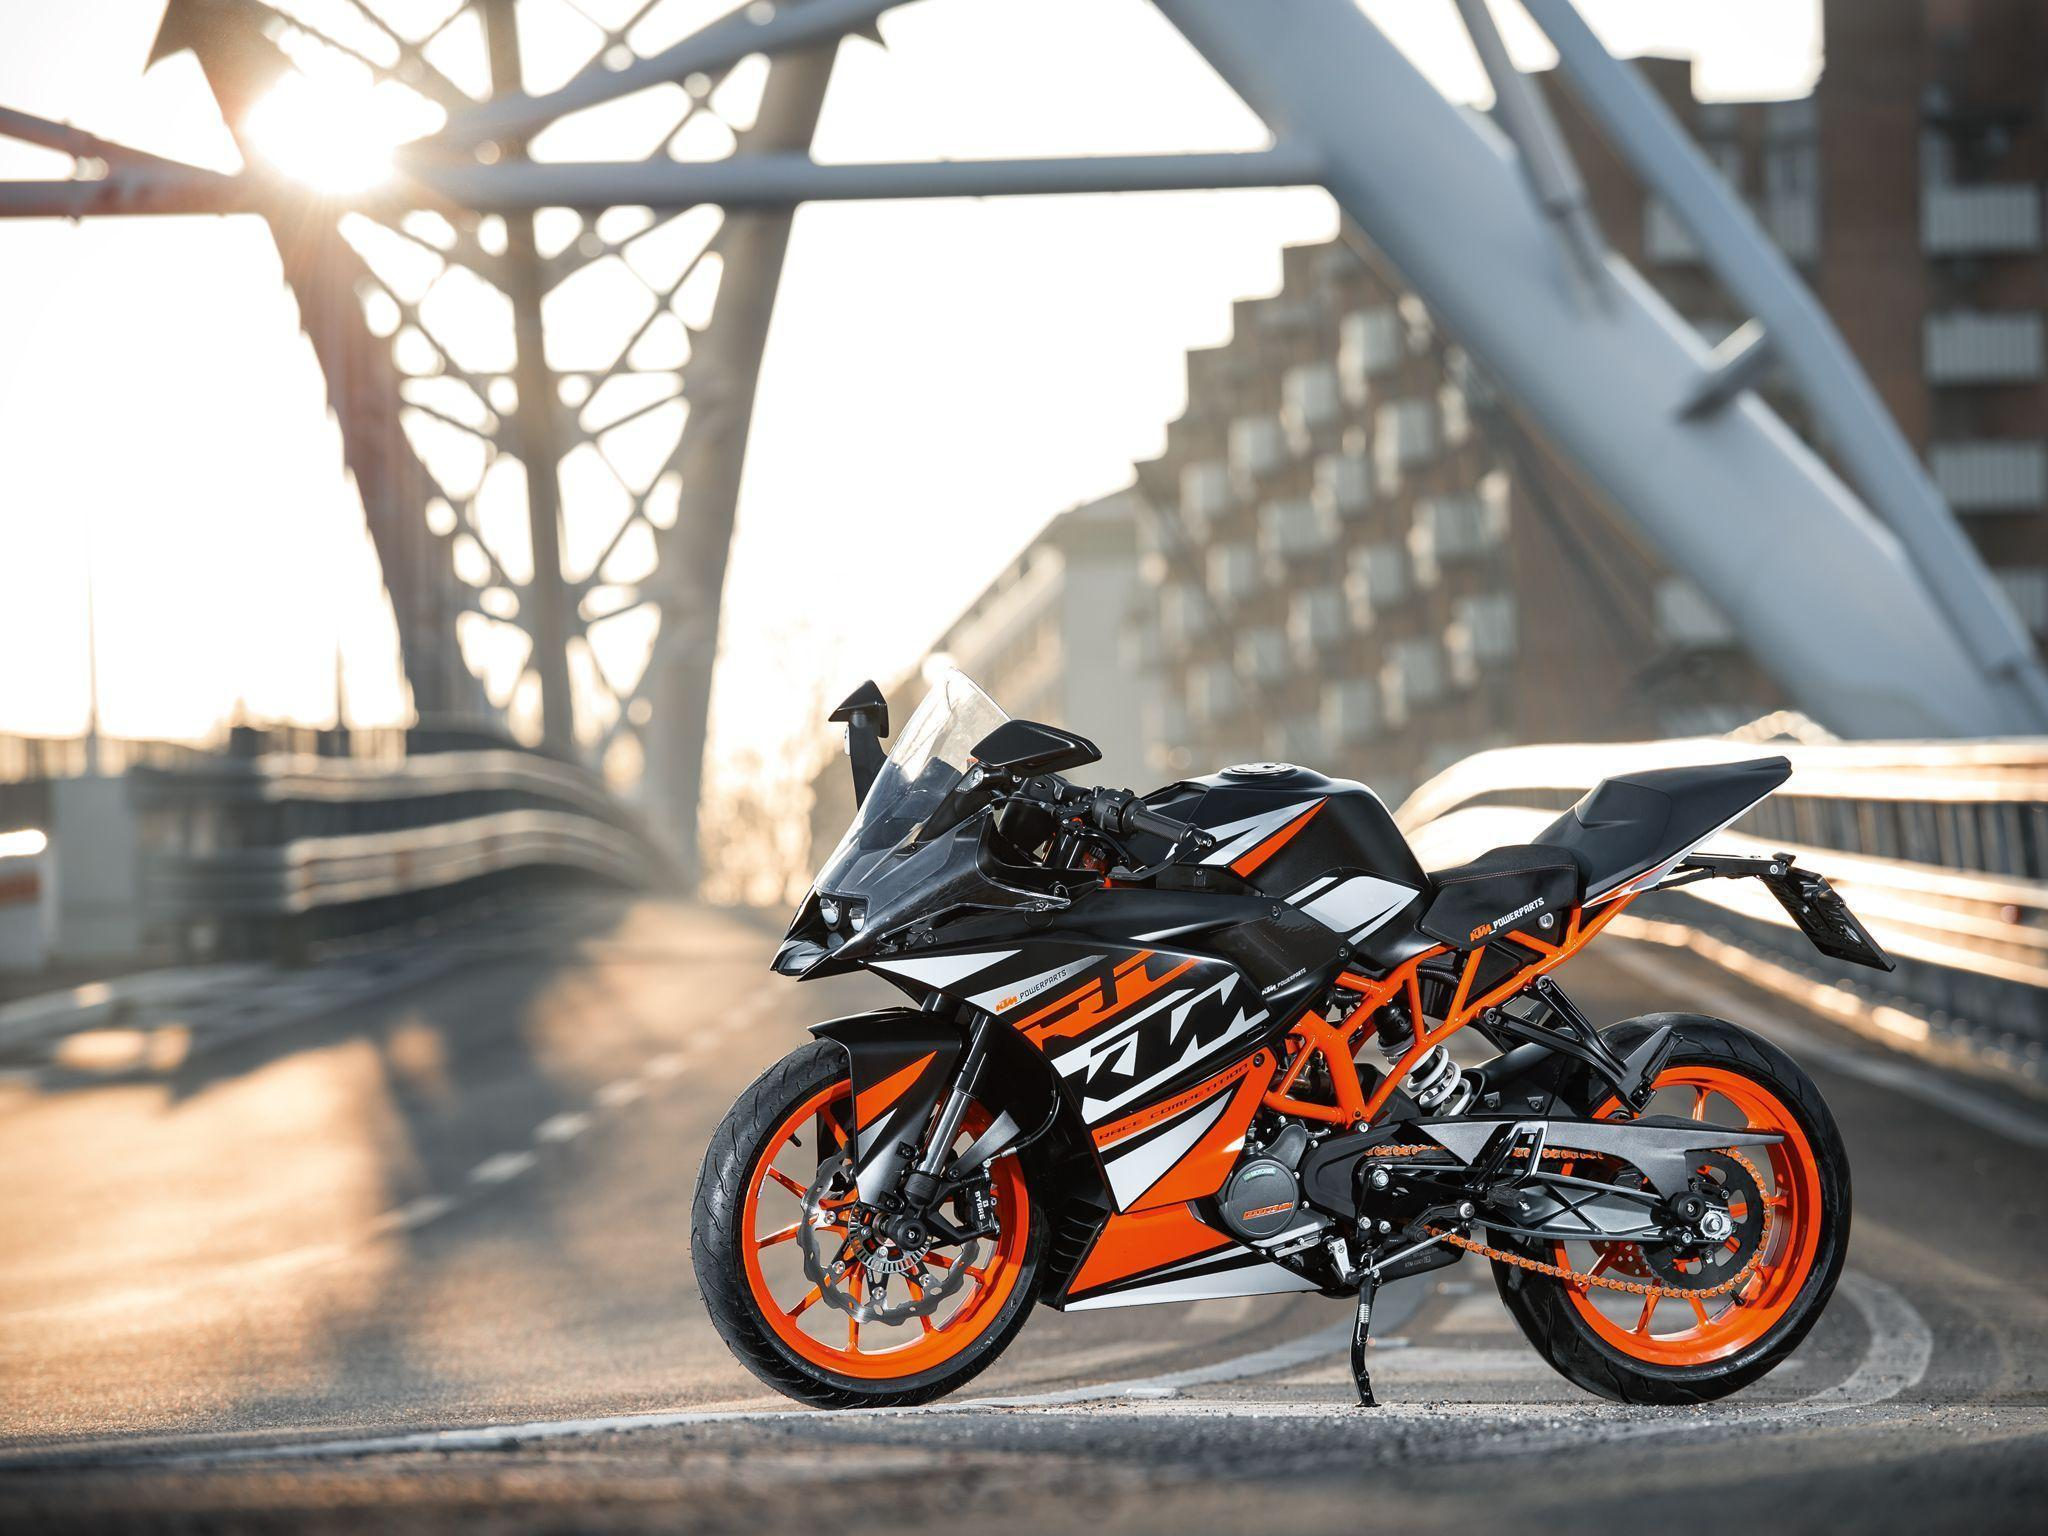 Ktm Rc 200 Bike Wallpapers Wallpaper Cave